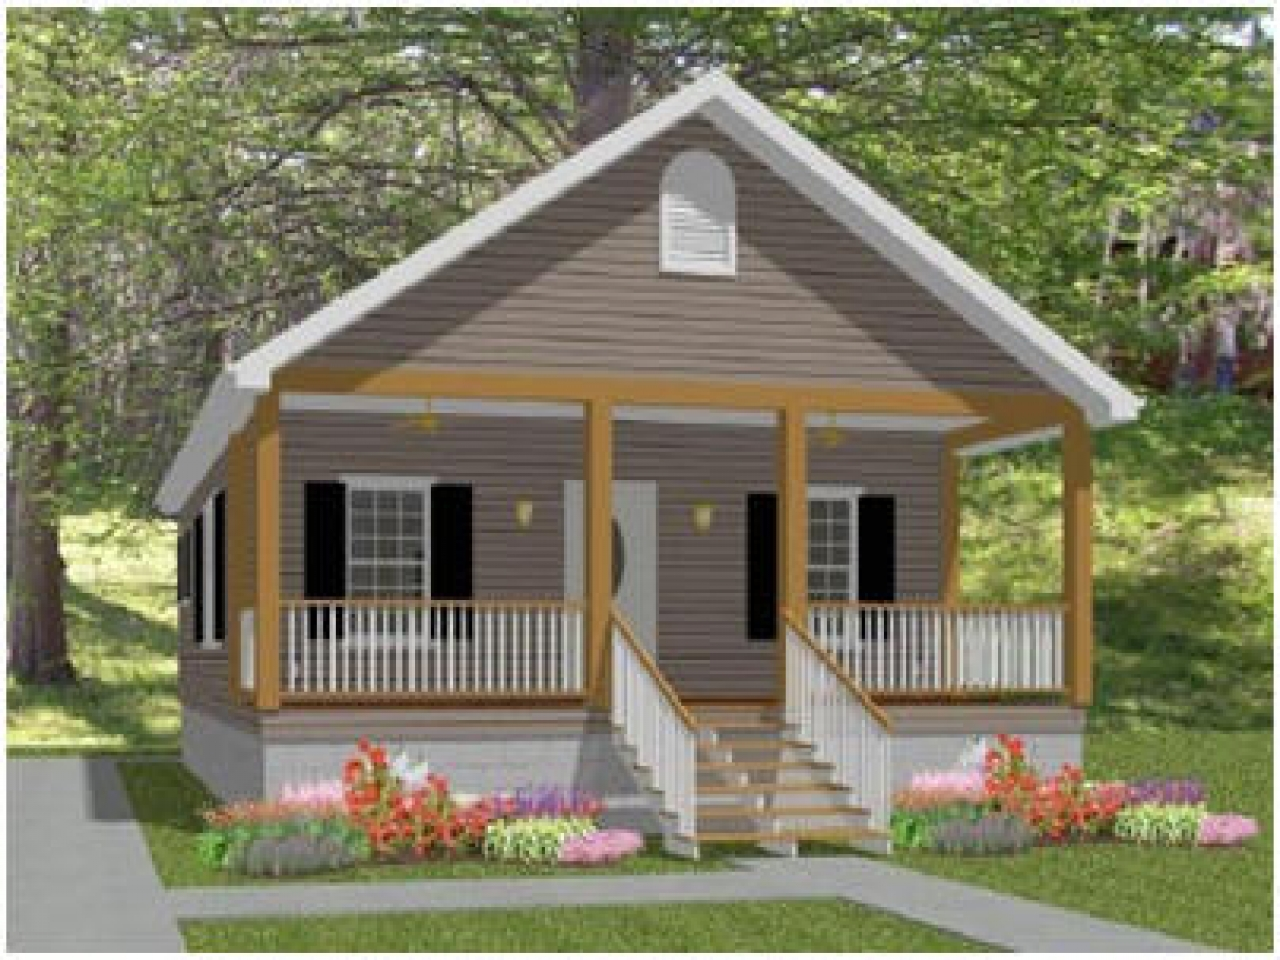 Small Home Designs: Small Cottage House Plans With Porches Small Country House